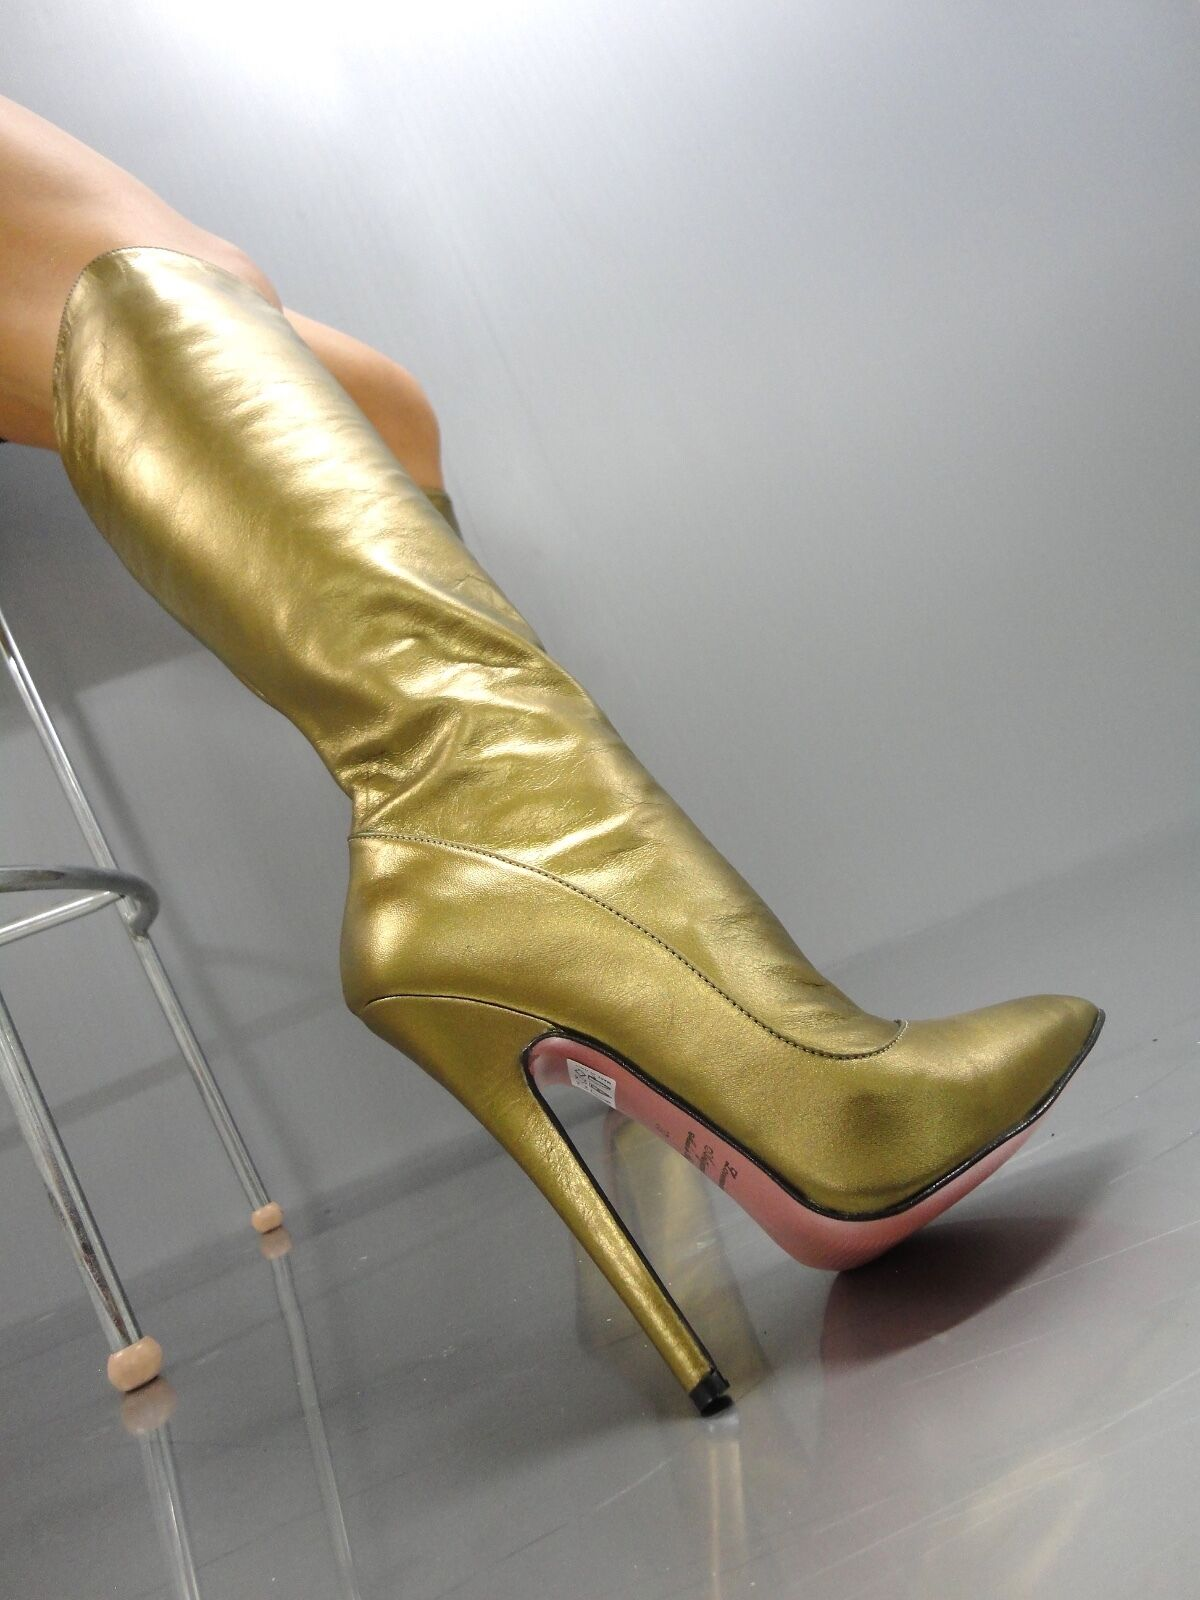 MORI MORI MORI MADE IN ITALY KNEE HIGHEST SEXY BOOTS STIEFEL STIVALI LEATHER gold gold 44 37b15a